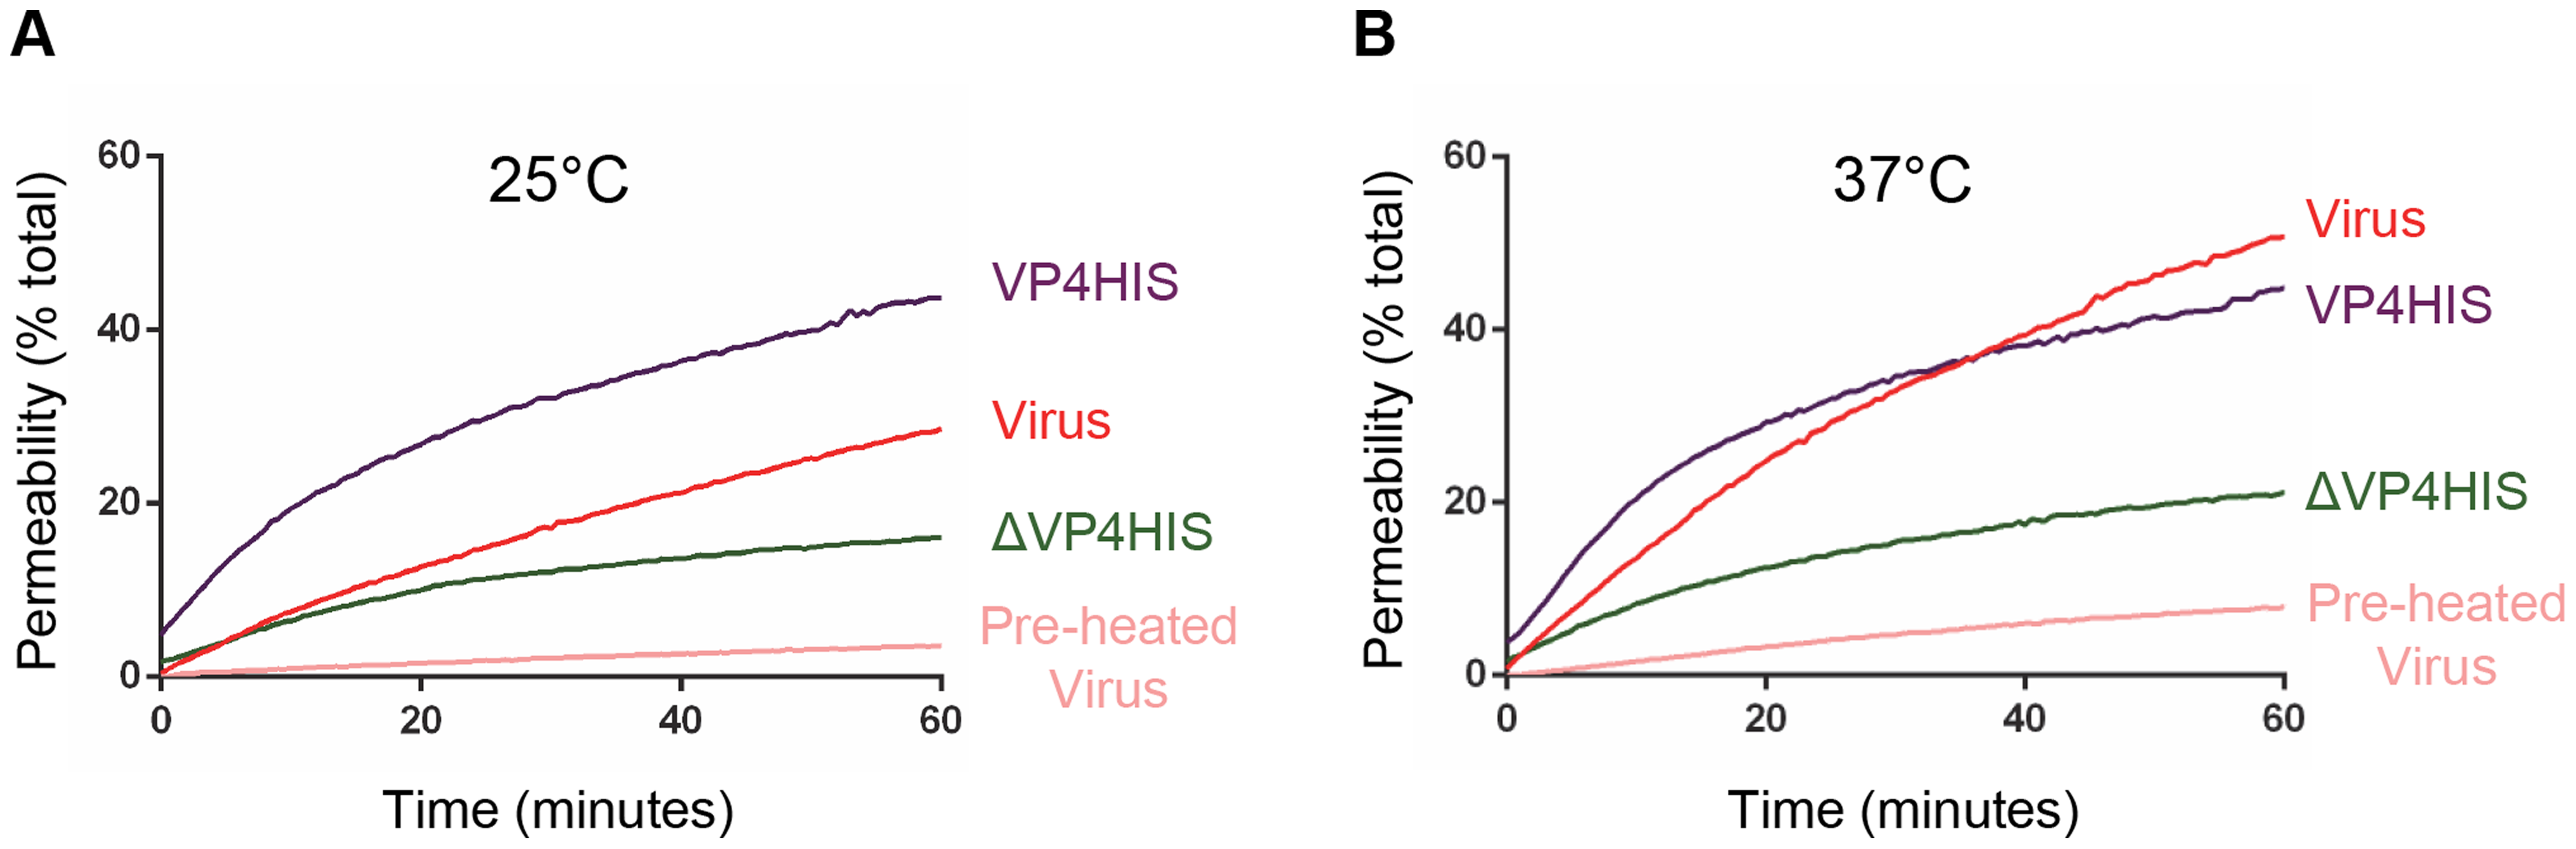 VP4-induced permeability is comparable to that of virus.